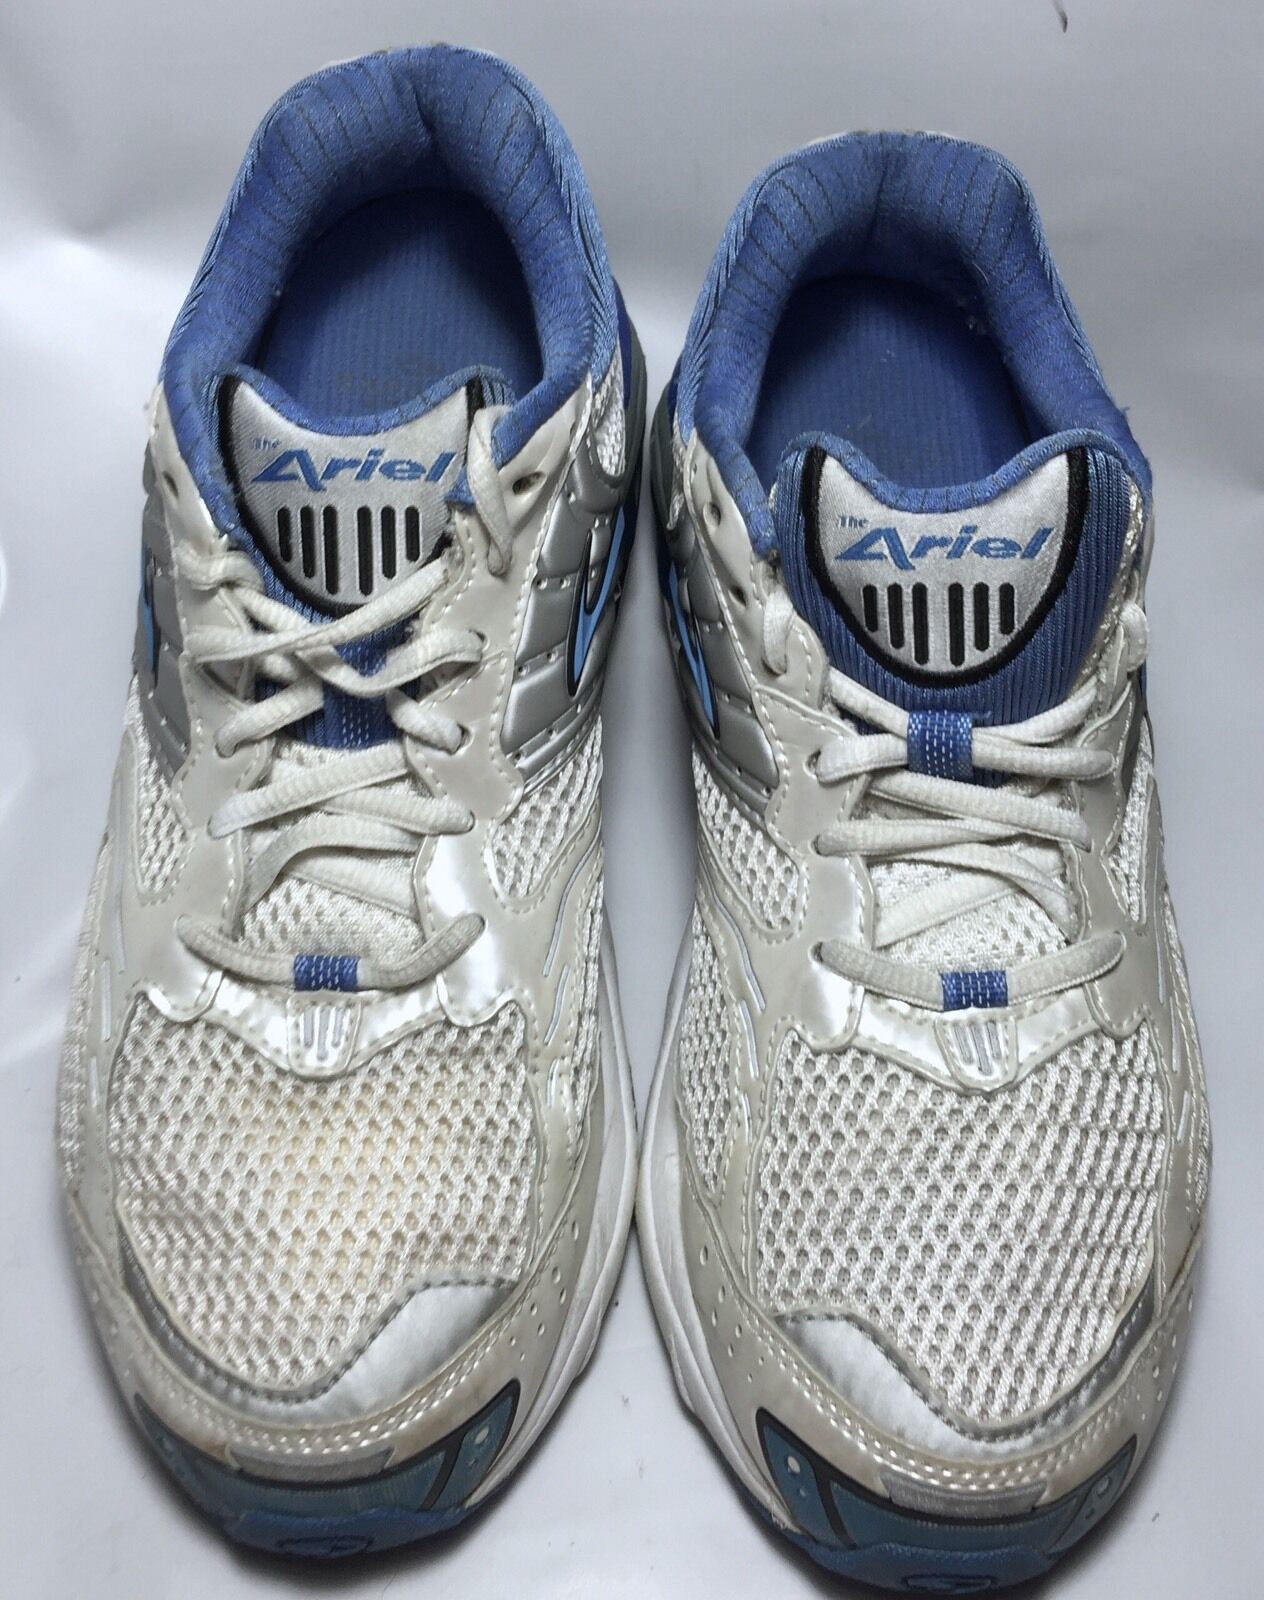 Brooks Ariel Running Cross Training shoes Sneakers White And bluee Size 8